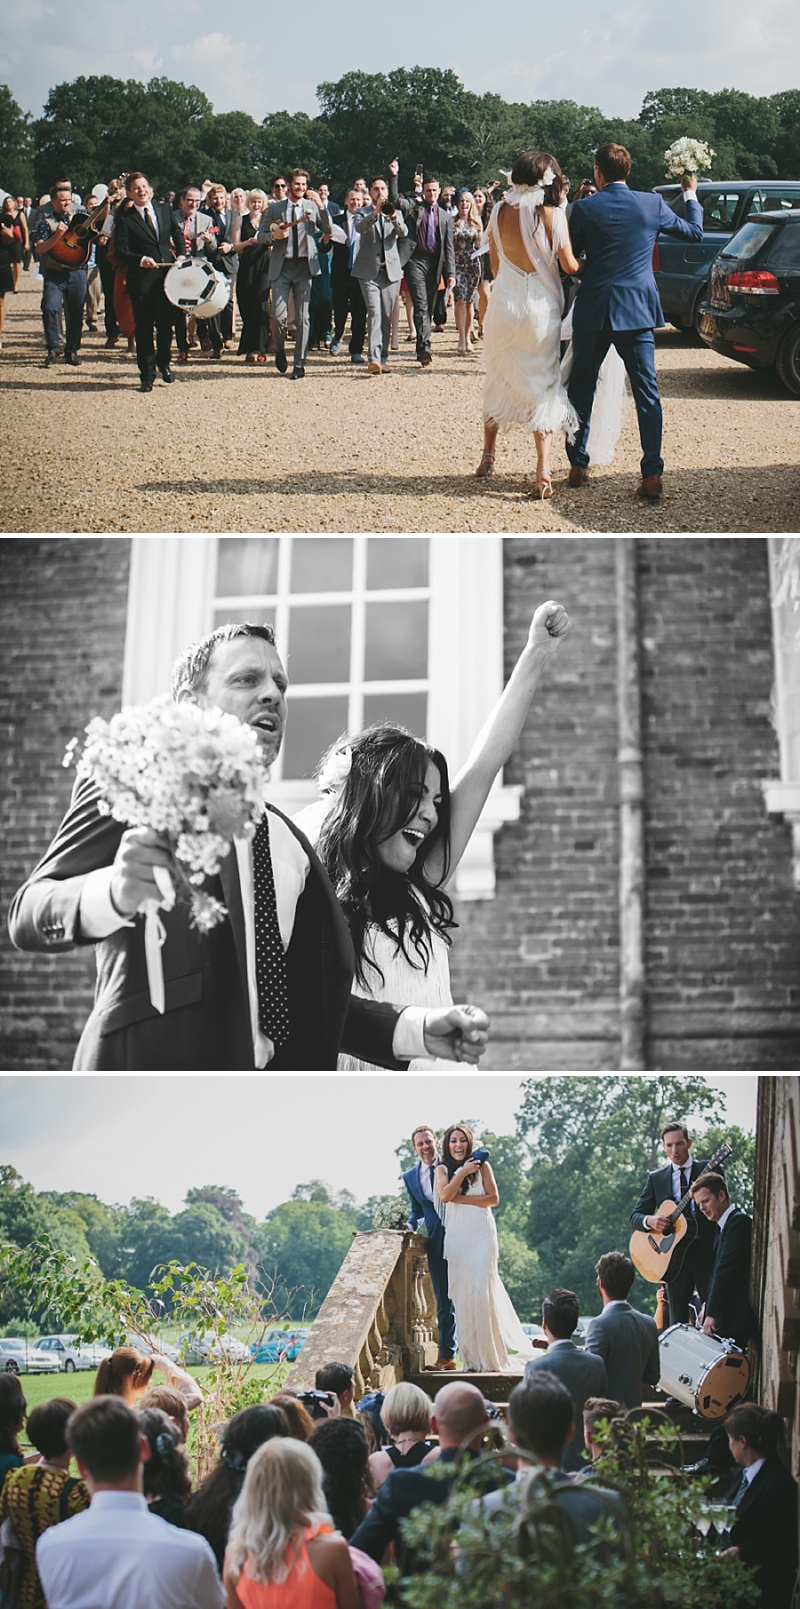 A Great Gatsby Woodstock themed wedding at Stanford Hall with a bridal gown from Blackburn Bridal Couture 0039 Woodstock Meets The Great Gatsby.